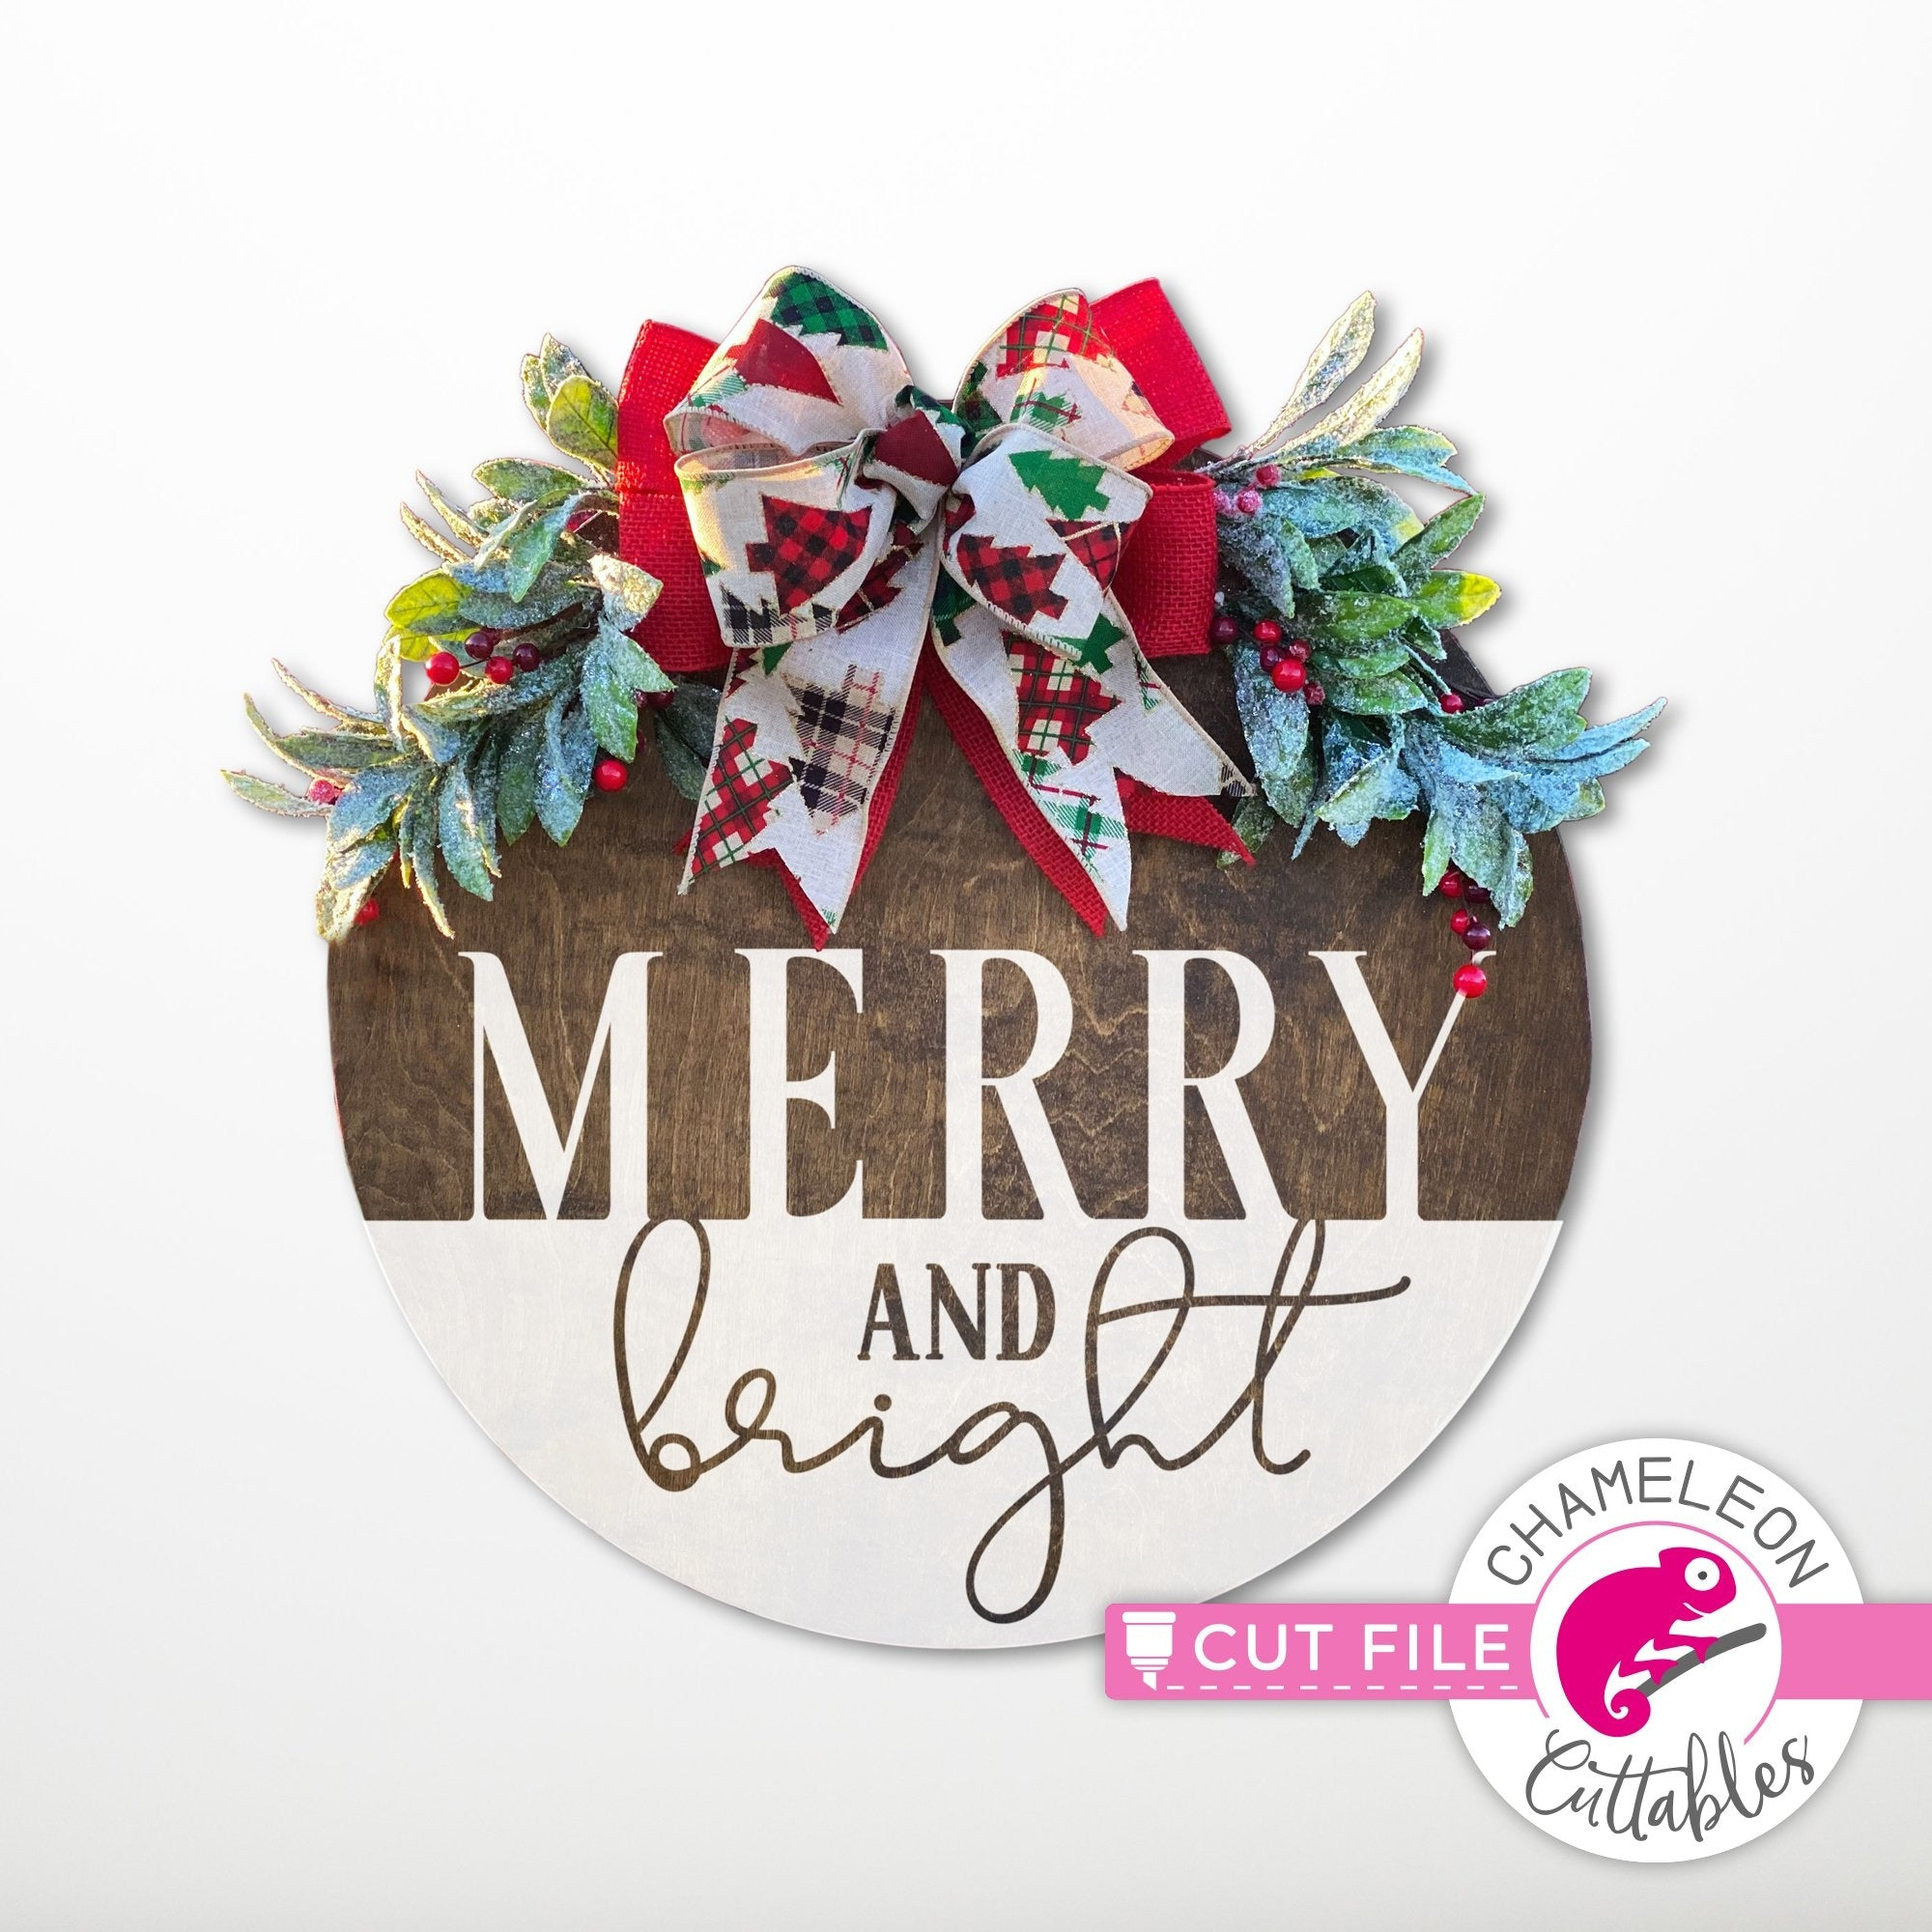 Merry And Bright For Round Sign Svg Png Dxf Eps Jpeg Chameleon Cuttables Llc